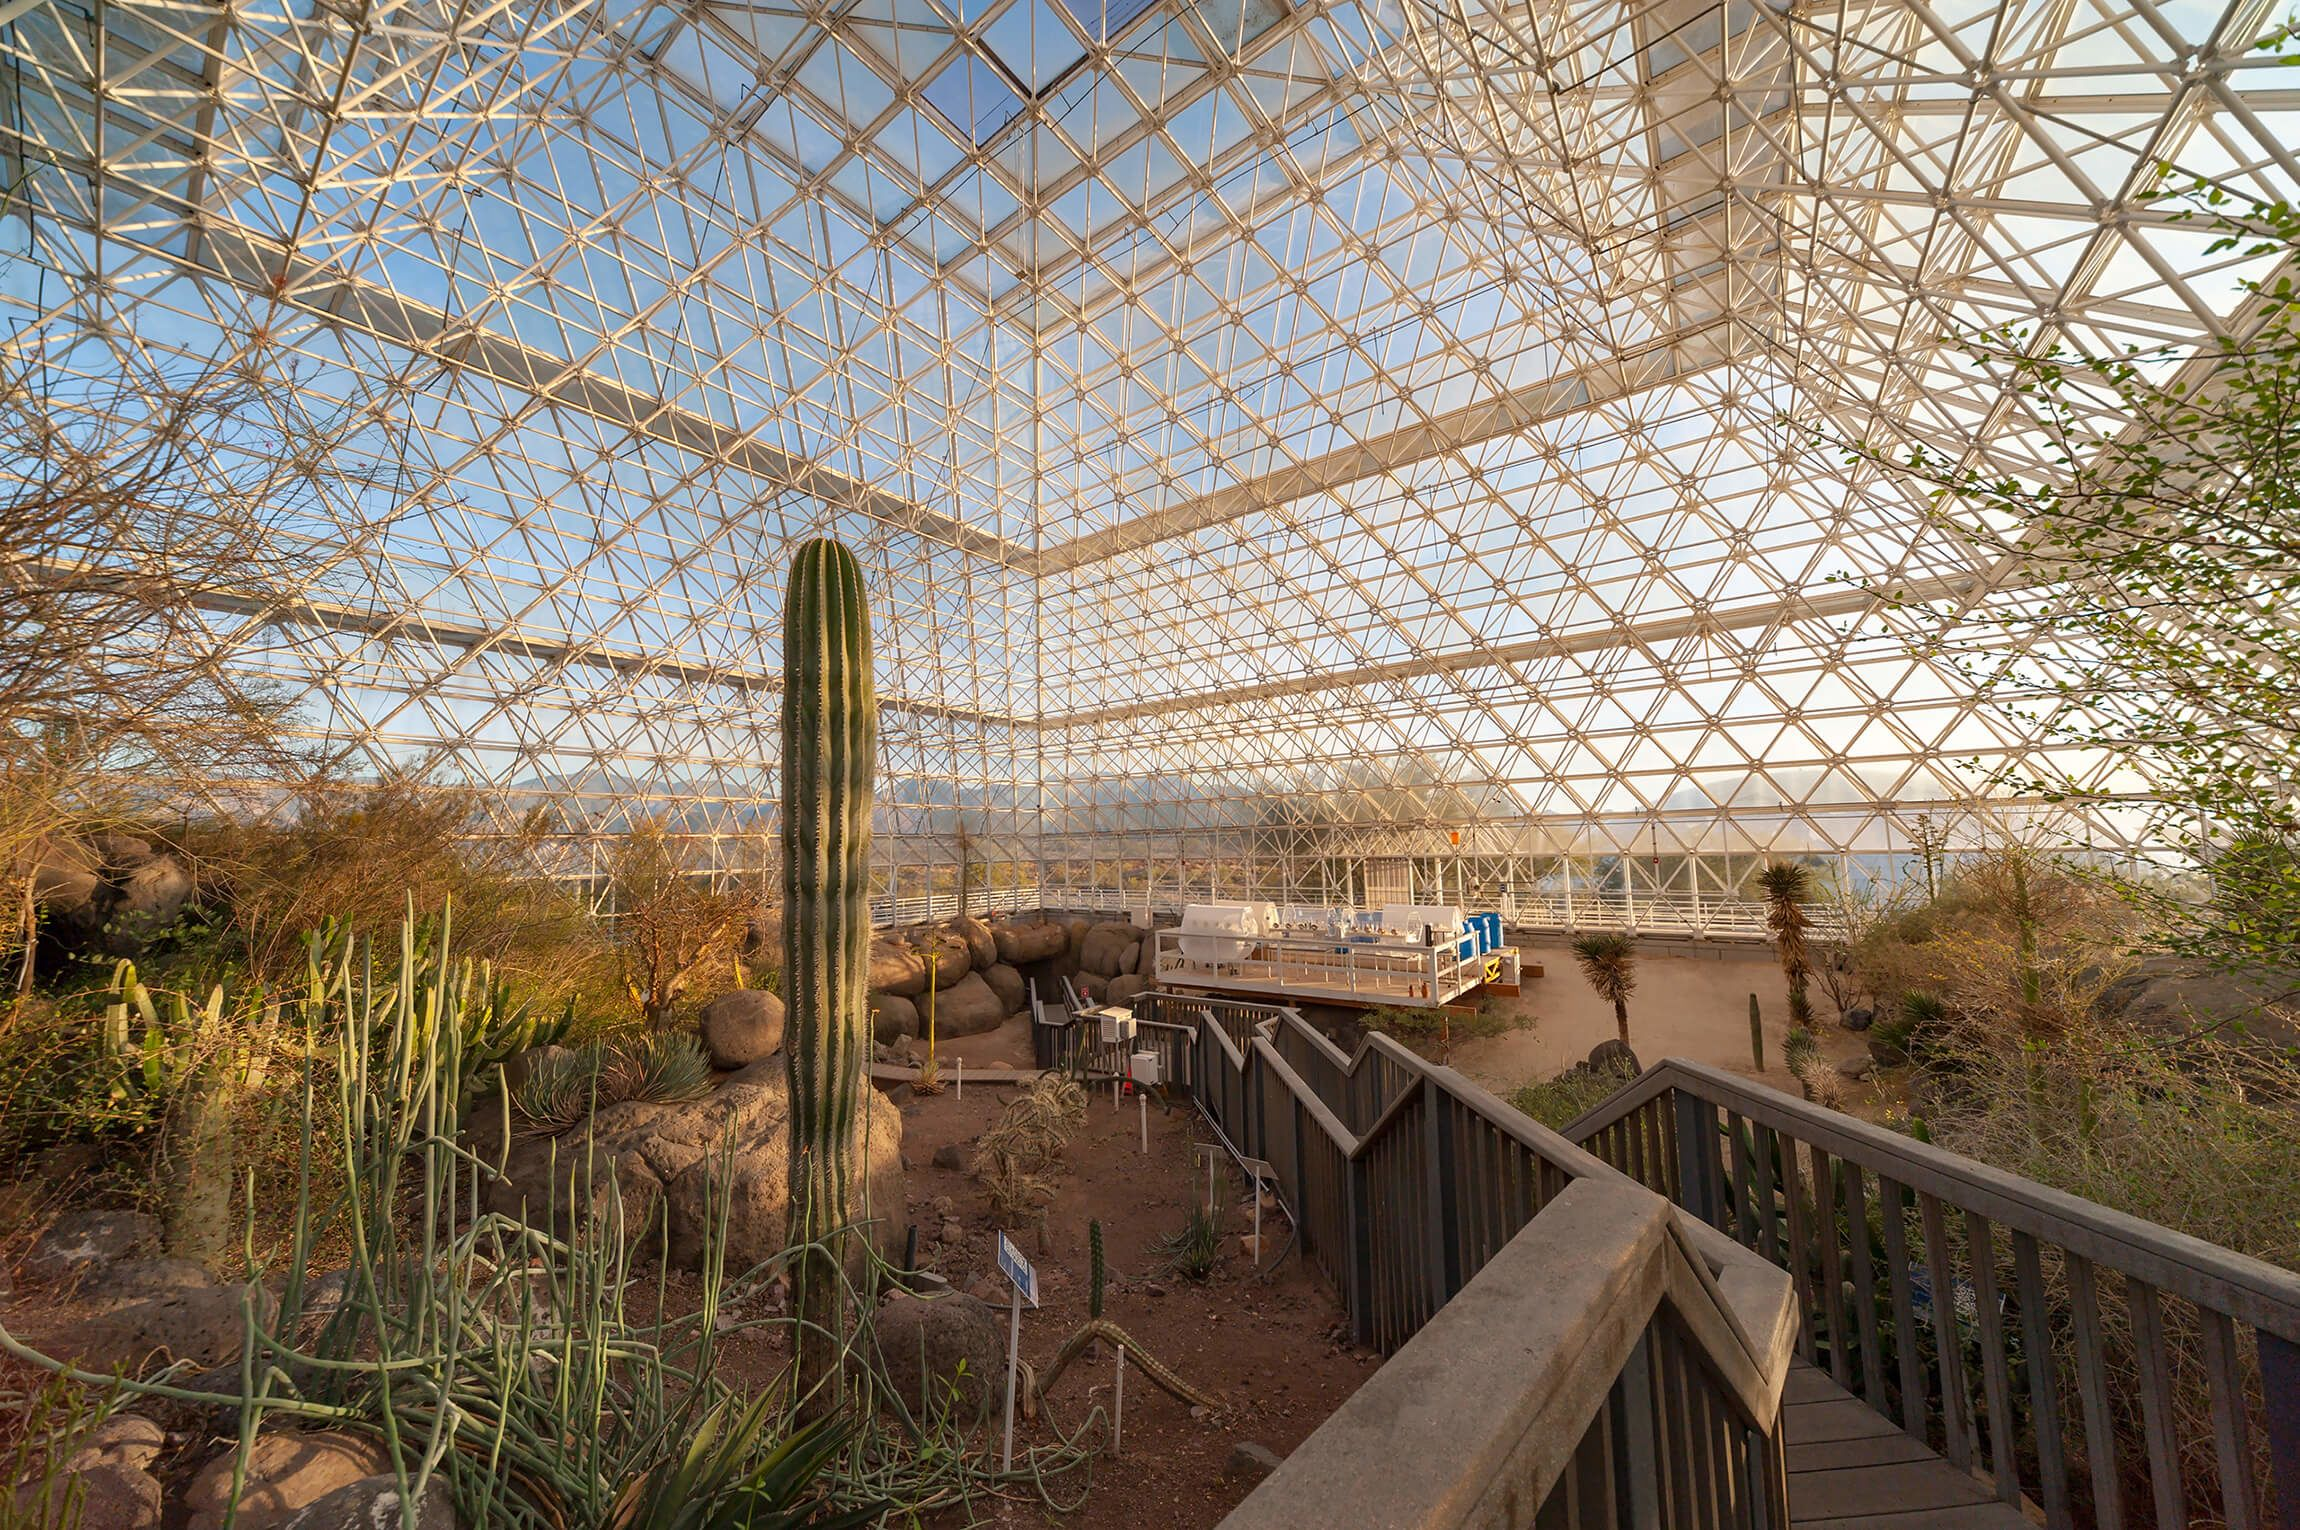 The desert biome of Biosphere 2 is warm and arid.